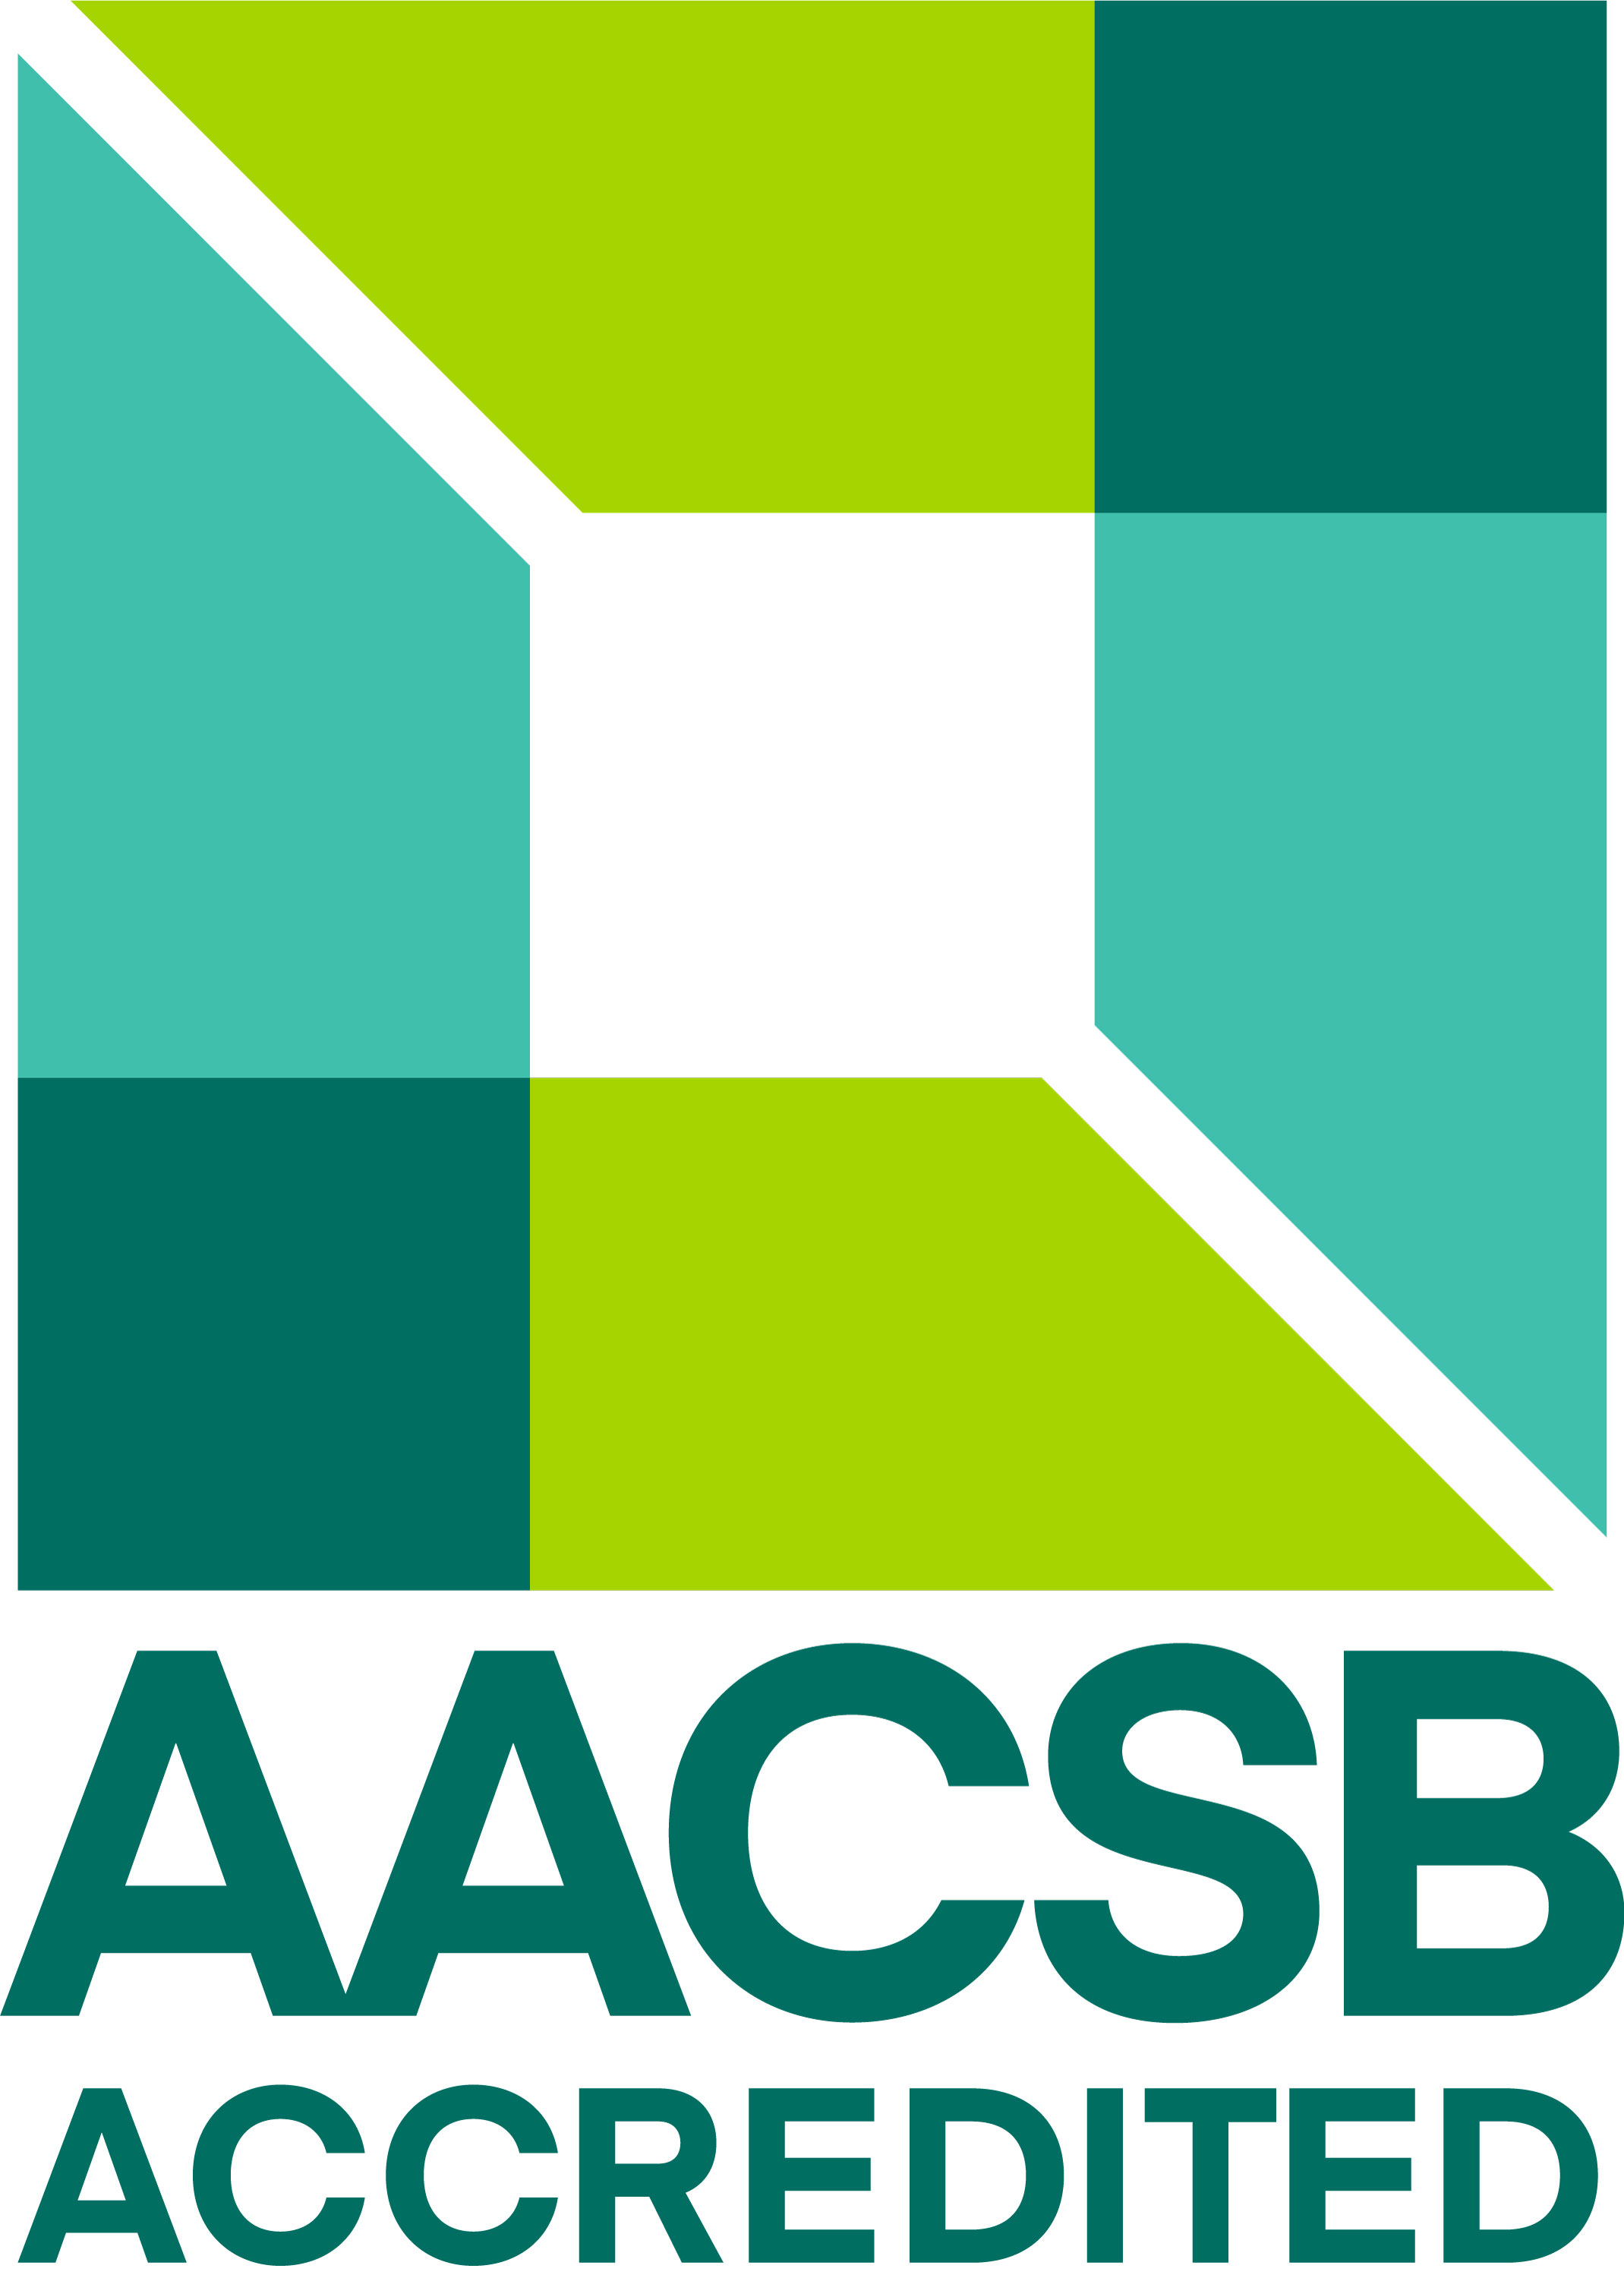 AACSB-logo-accredited-vert-color-RGB.jpg